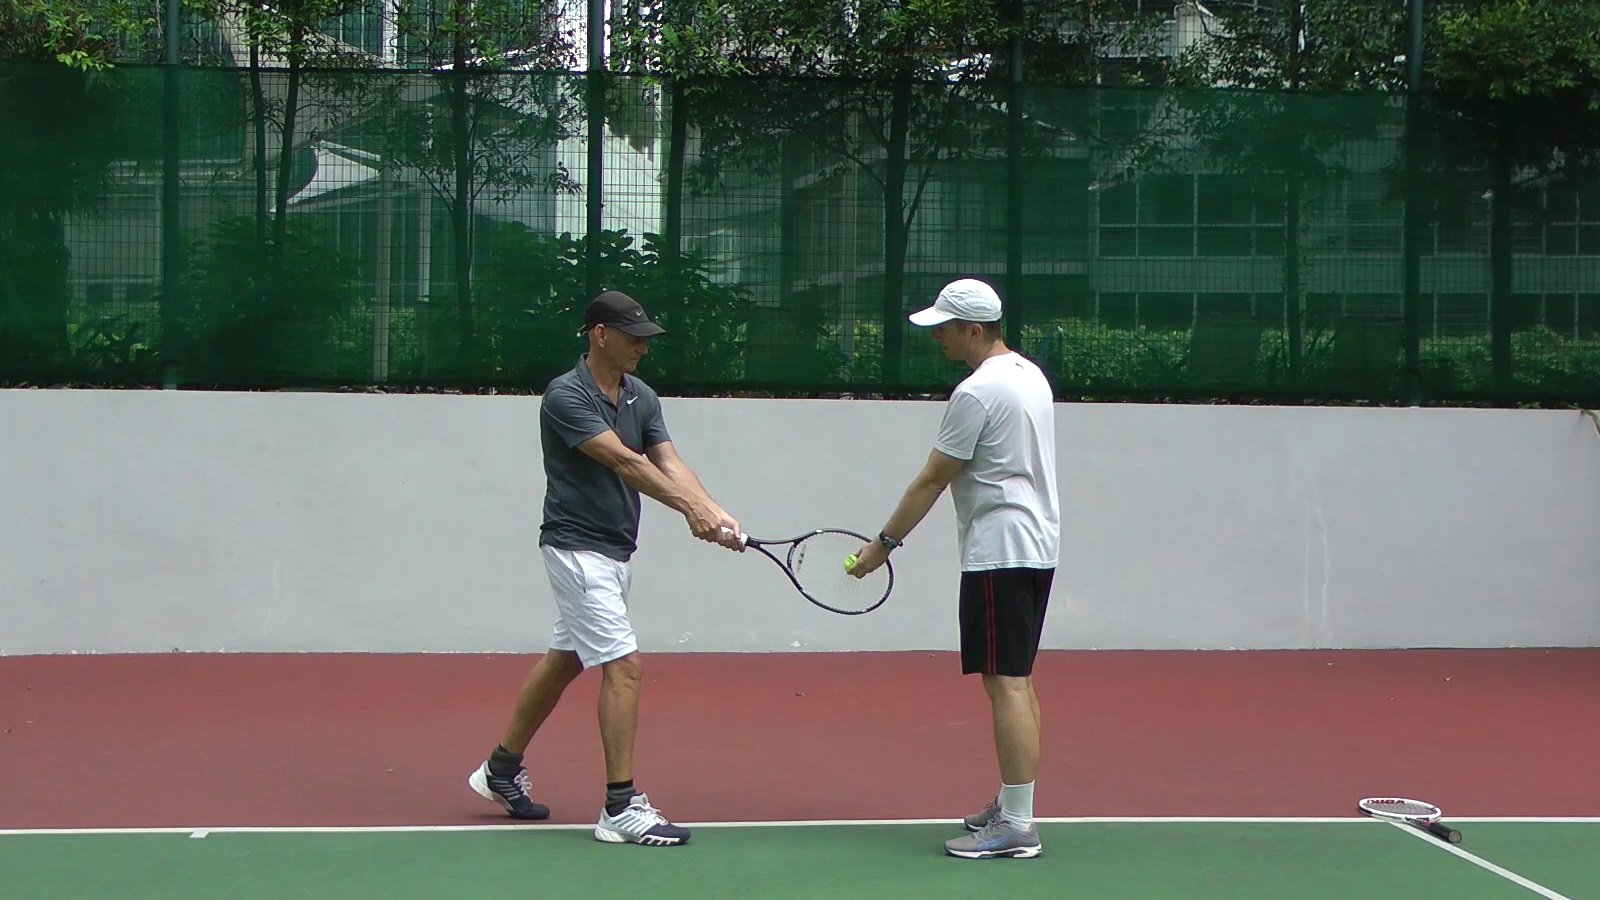 How To Diagnose Stroke Problems Two Handed Backhand Example